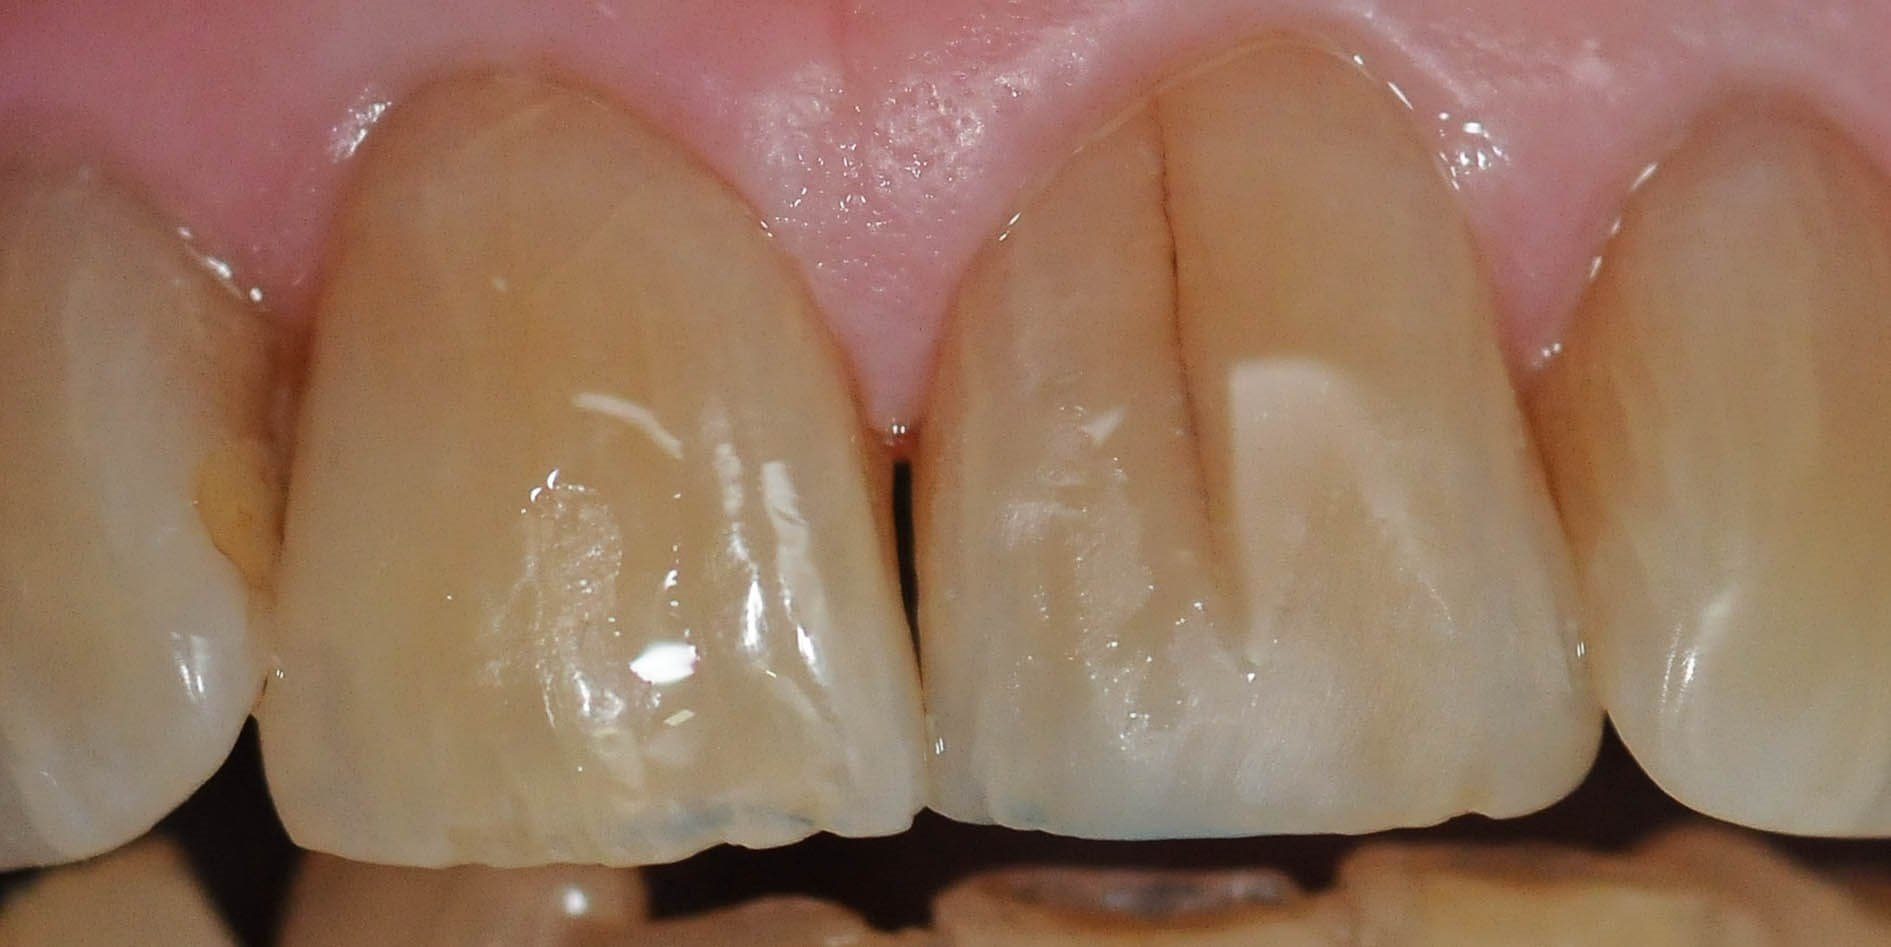 Emergency Repair Front Tooth After